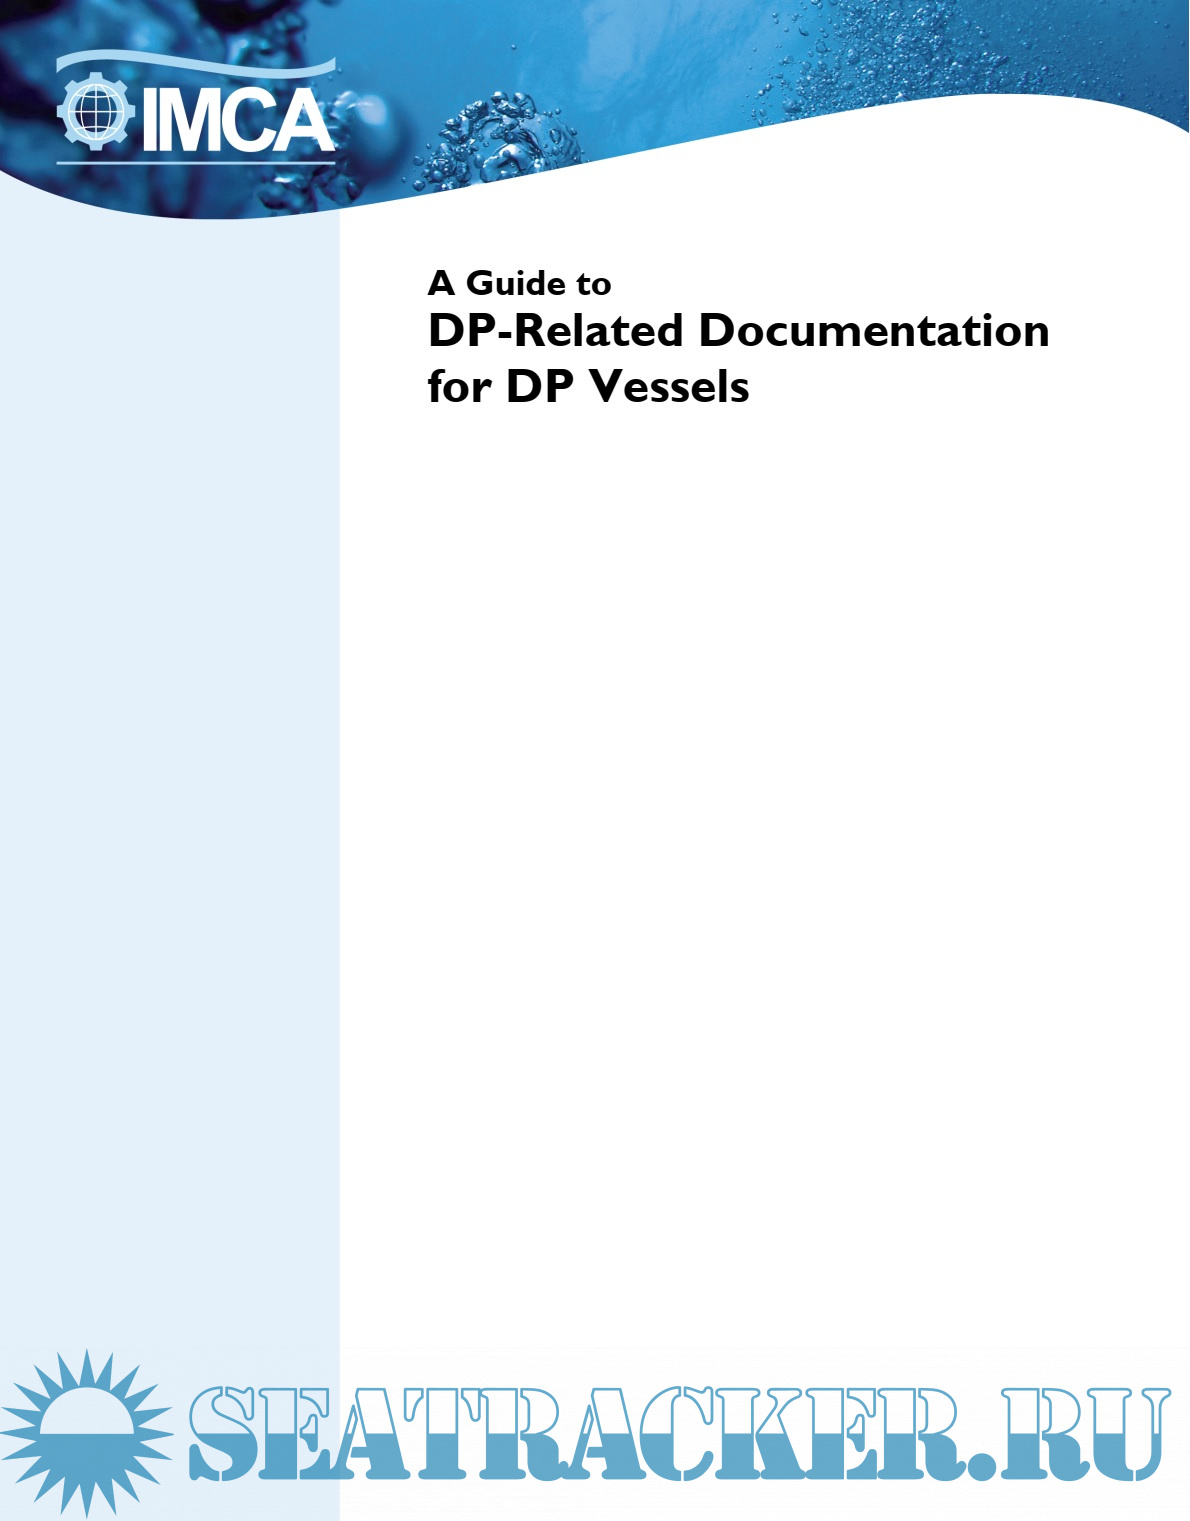 A Guide to DP-Related Documentation for DP Vessels - IMCA